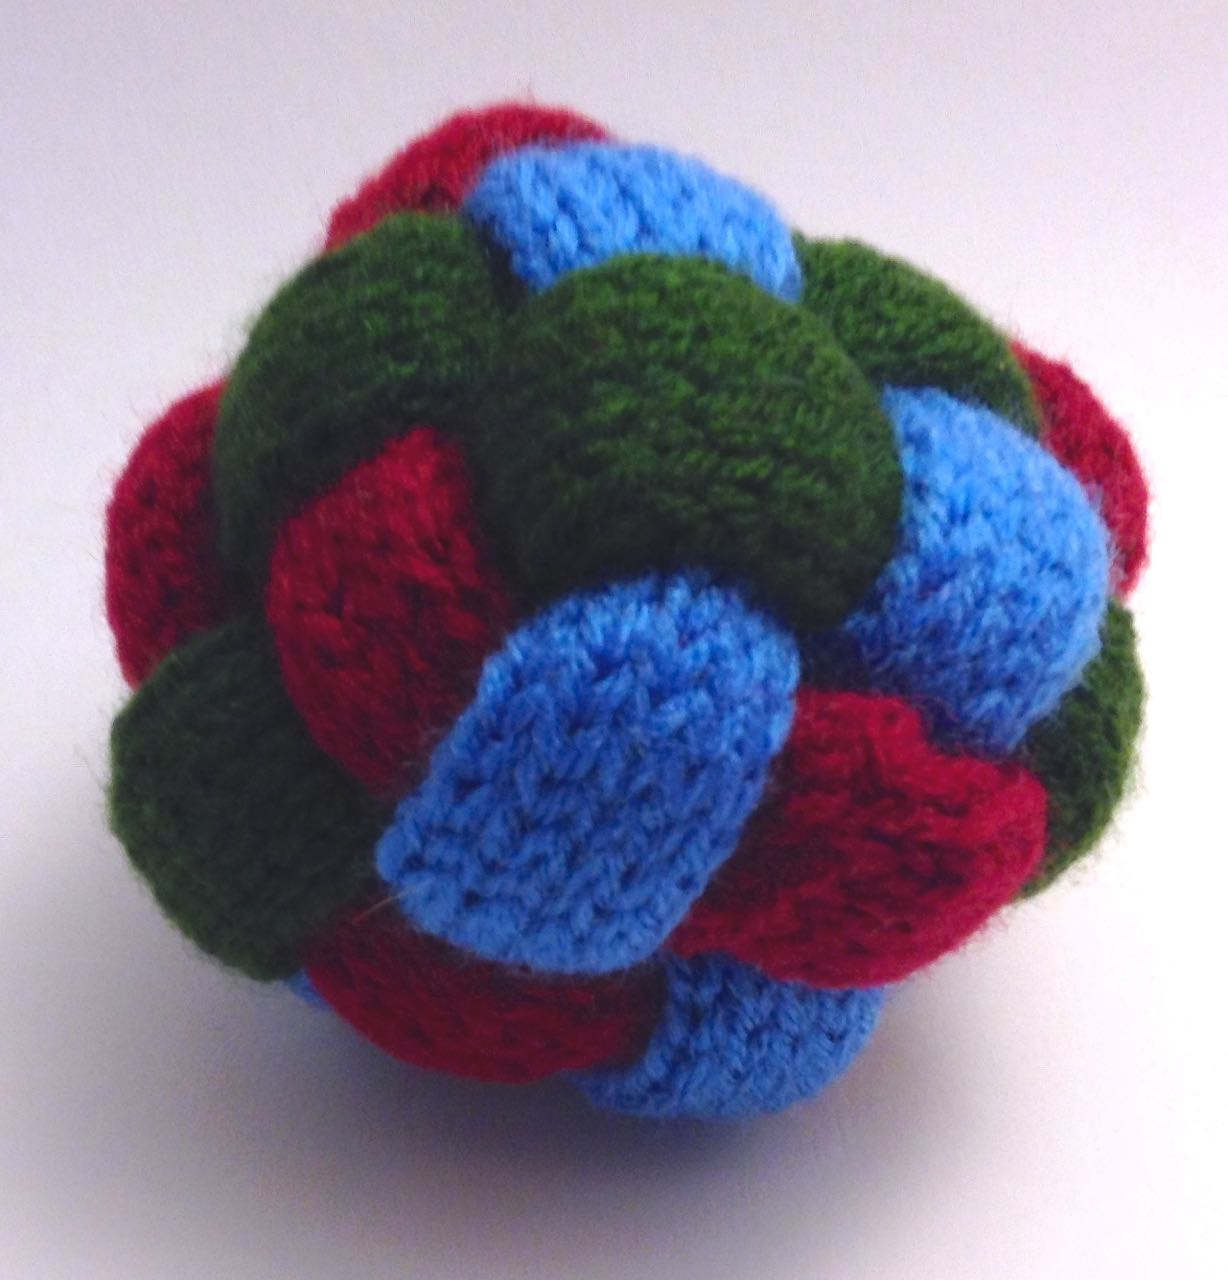 knit braided ball